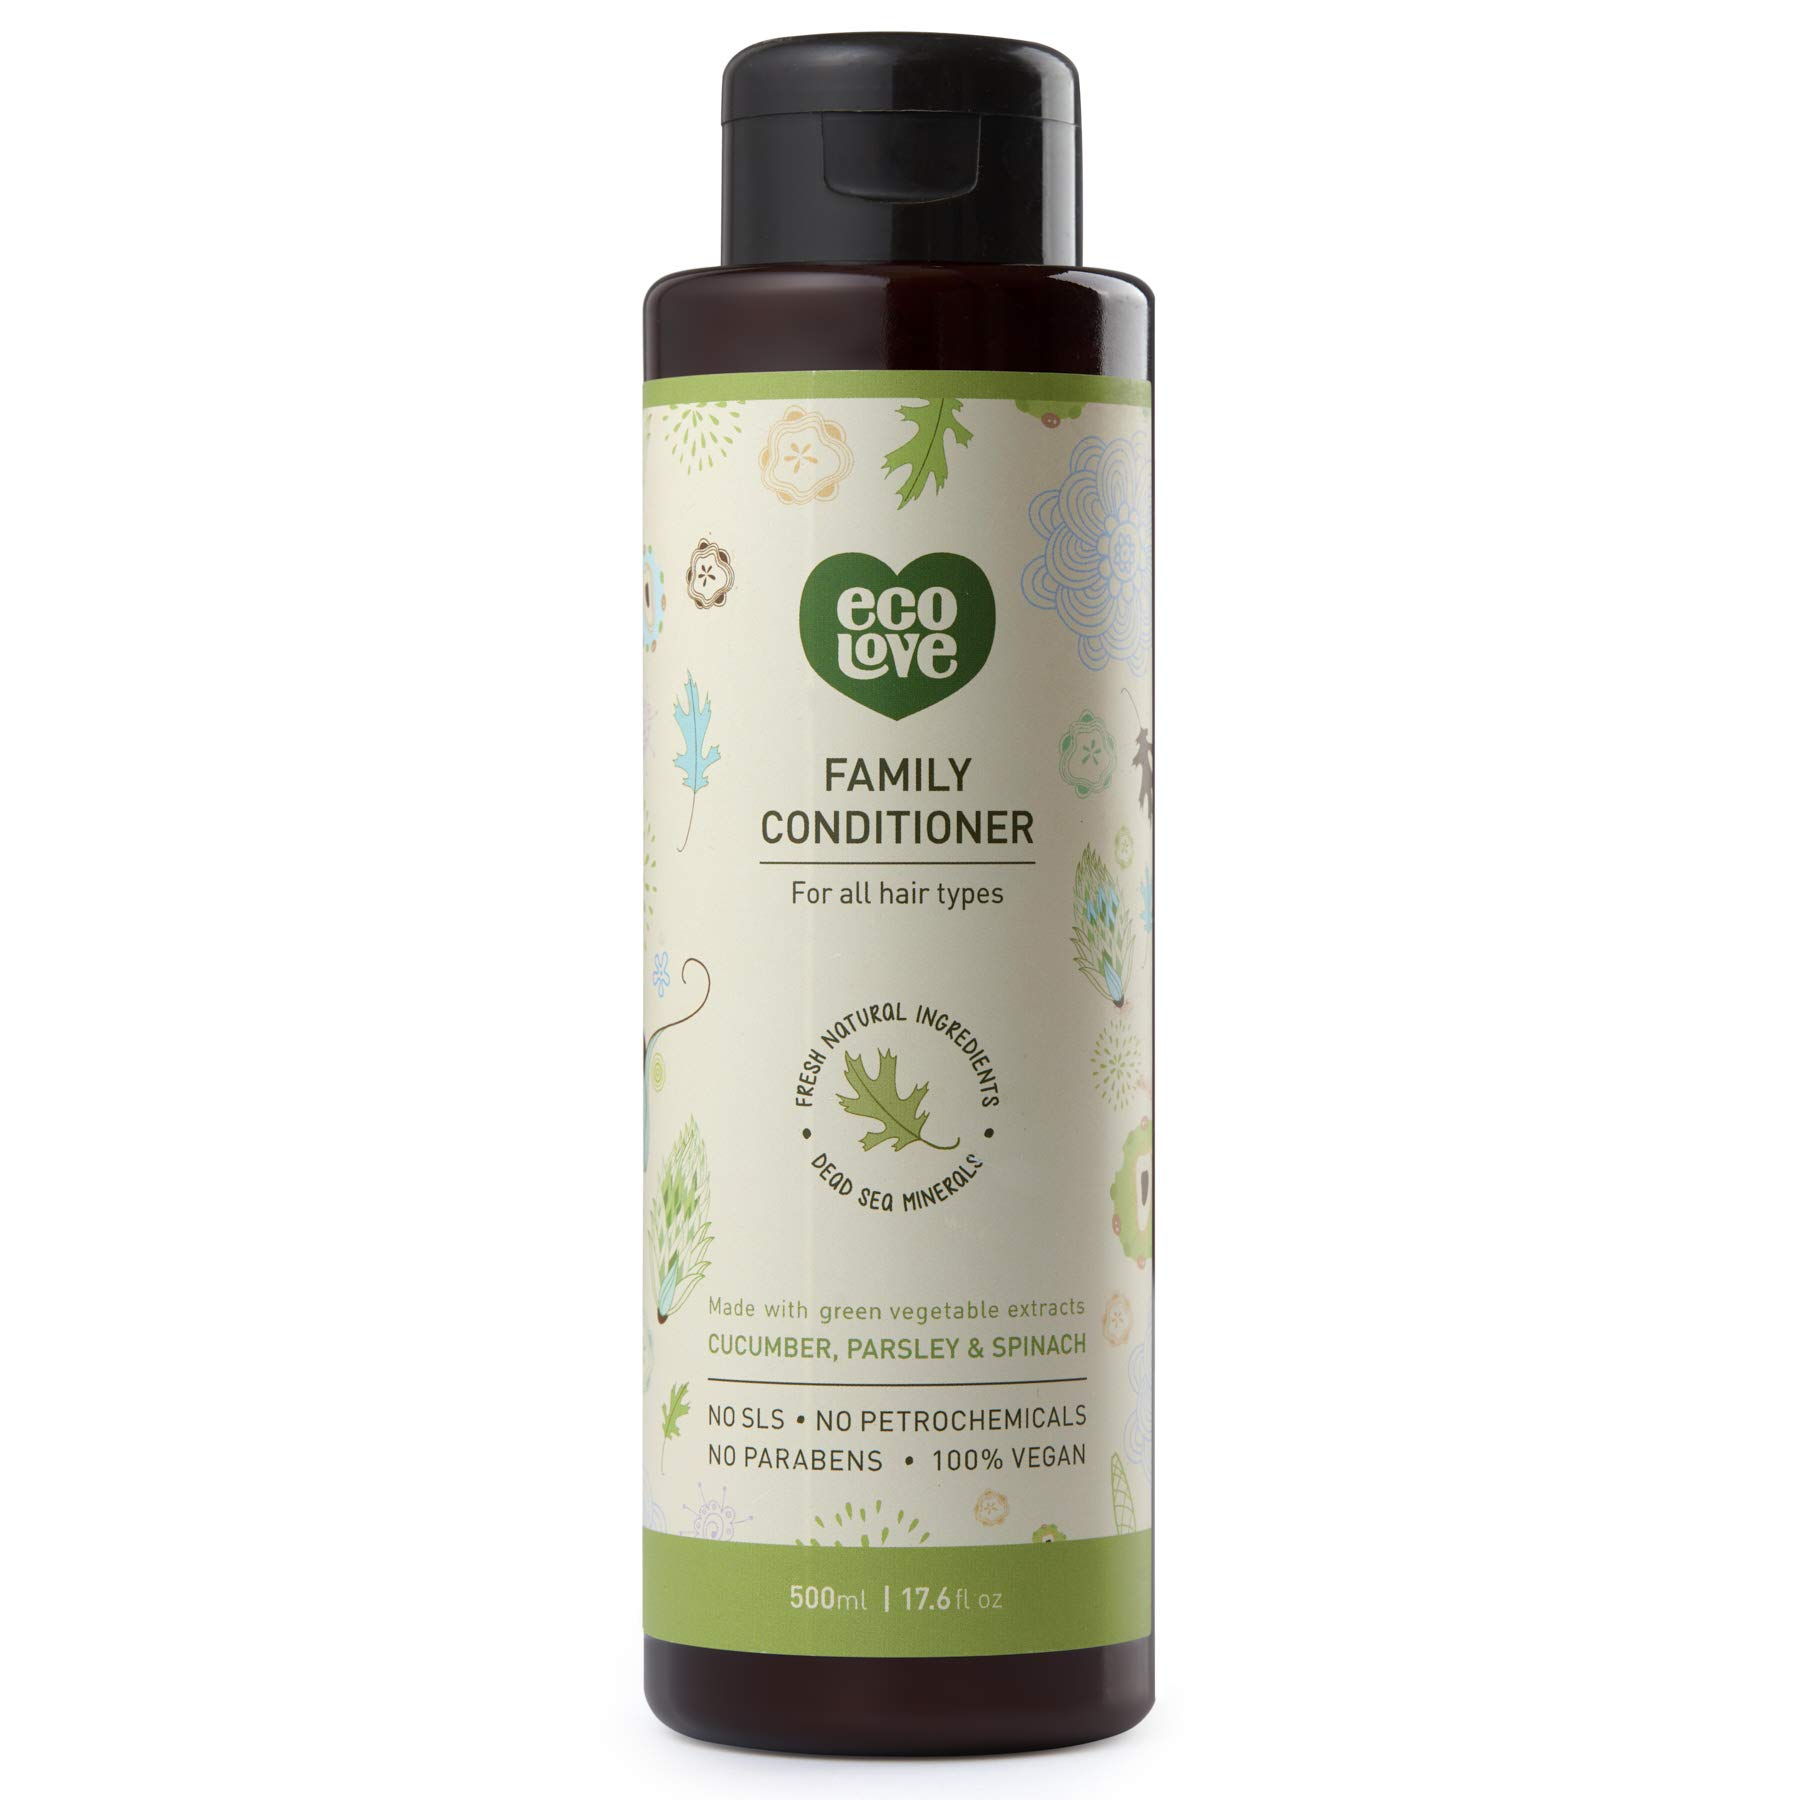 ecoLove Organic Conditioner with Cucumber Spinach and Parsley for All Hair Types Vegan Hair Conditioner for Women Men Kids Babies, SLS Paraben and Cruelty Free, 17.6 oz